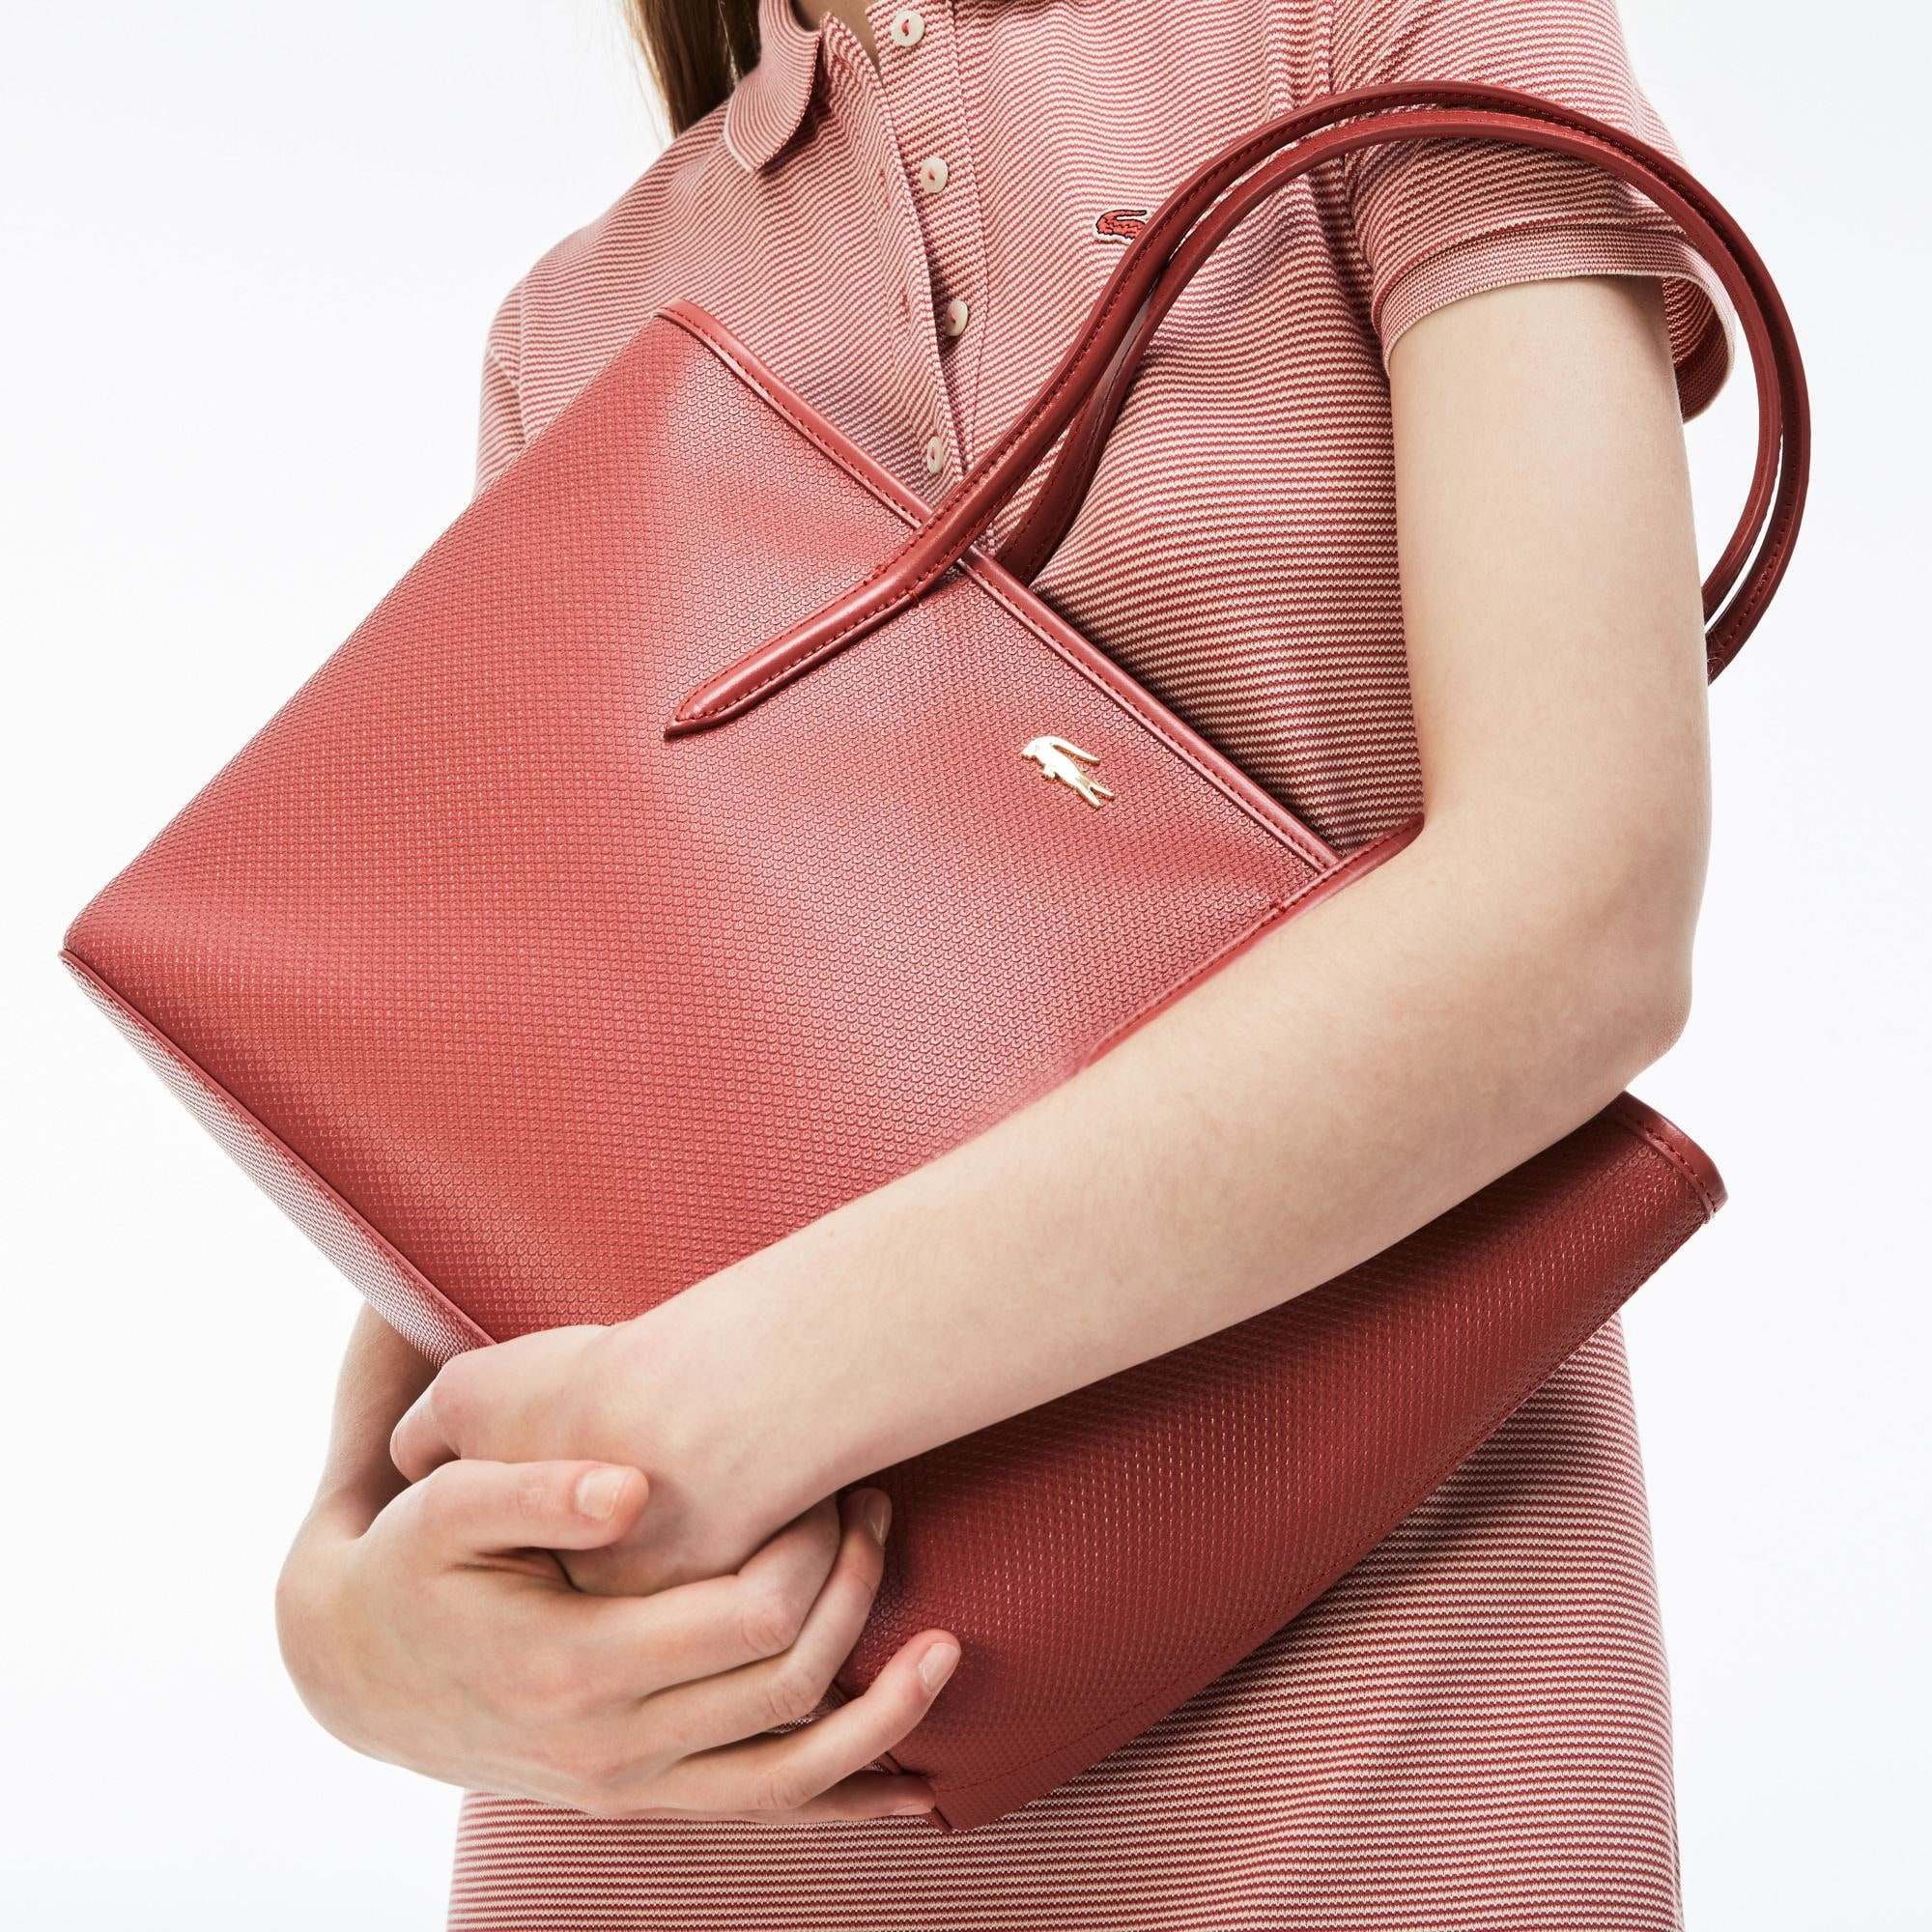 Women's Chantaco Zippered Piqué Leather Tote Bag